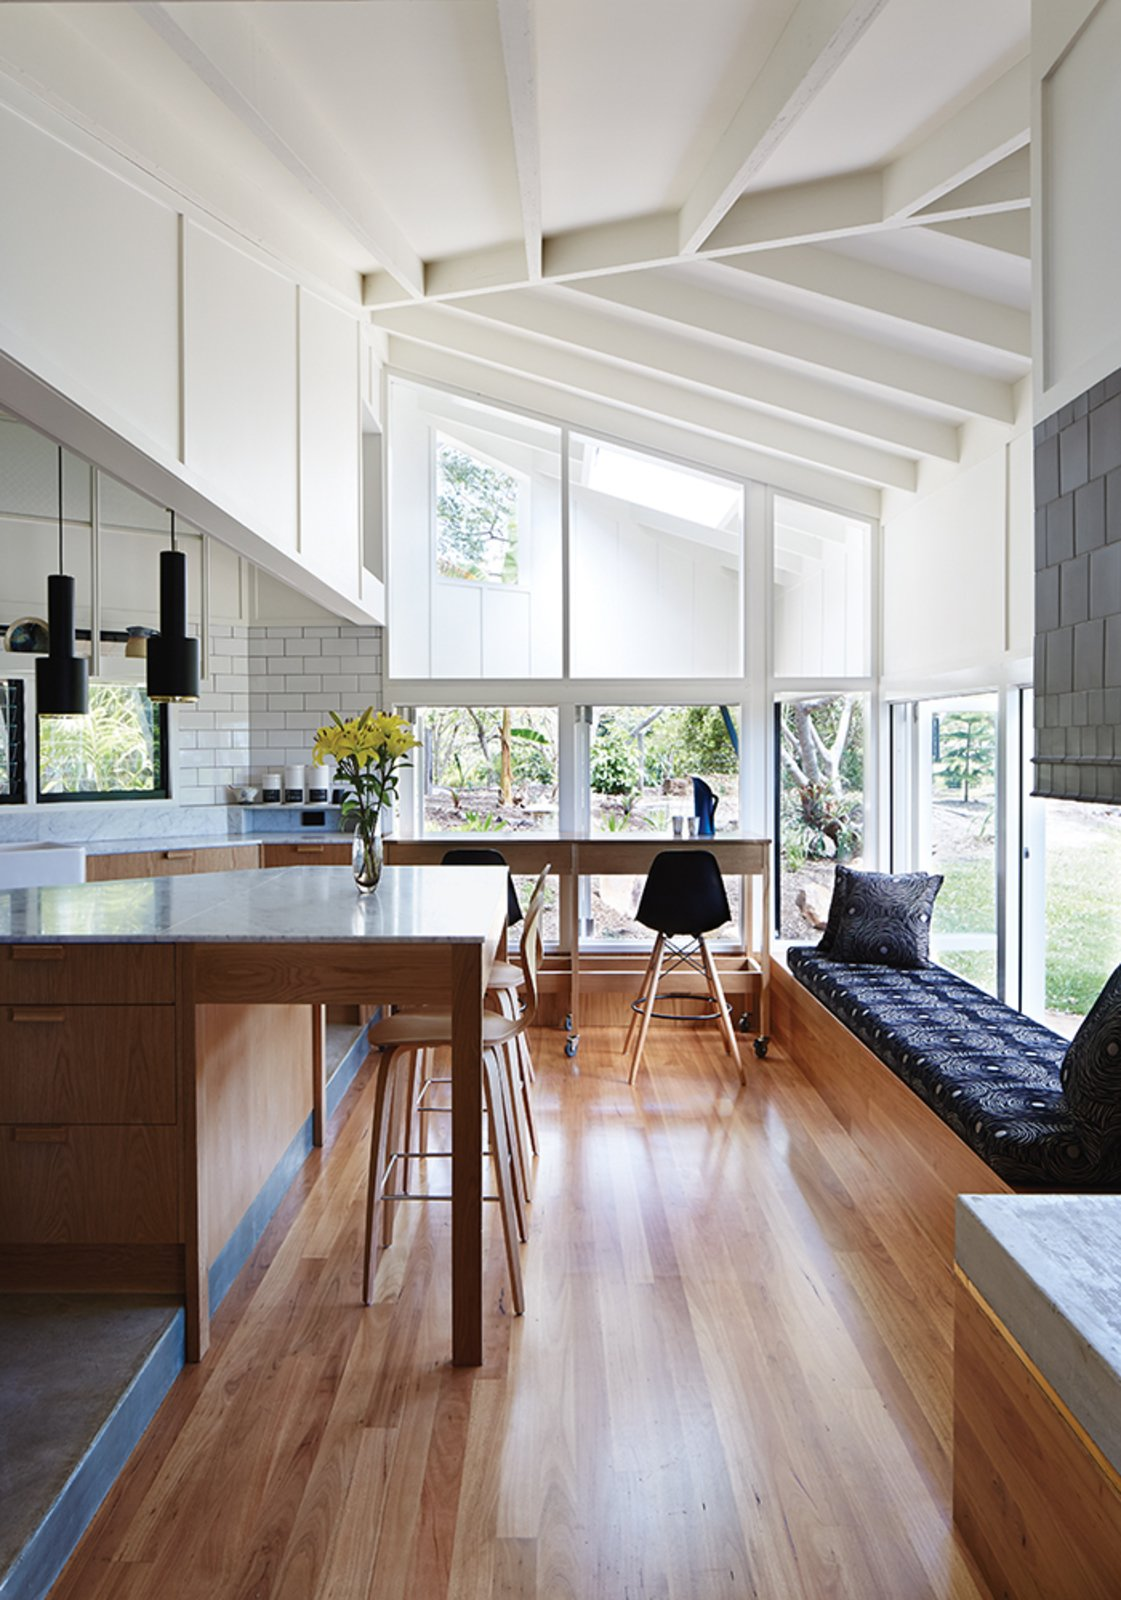 The architects used blackbutt wood for the flooring and Whisper White paint by Dulux throughout the interior. An A110 Hand Grenade Pendant Lamp, by Alvar Aalto for Artek, hangs above the white Carrara marble-topped island.  Photo 4 of 5 in This Kitchen Brings It All Together